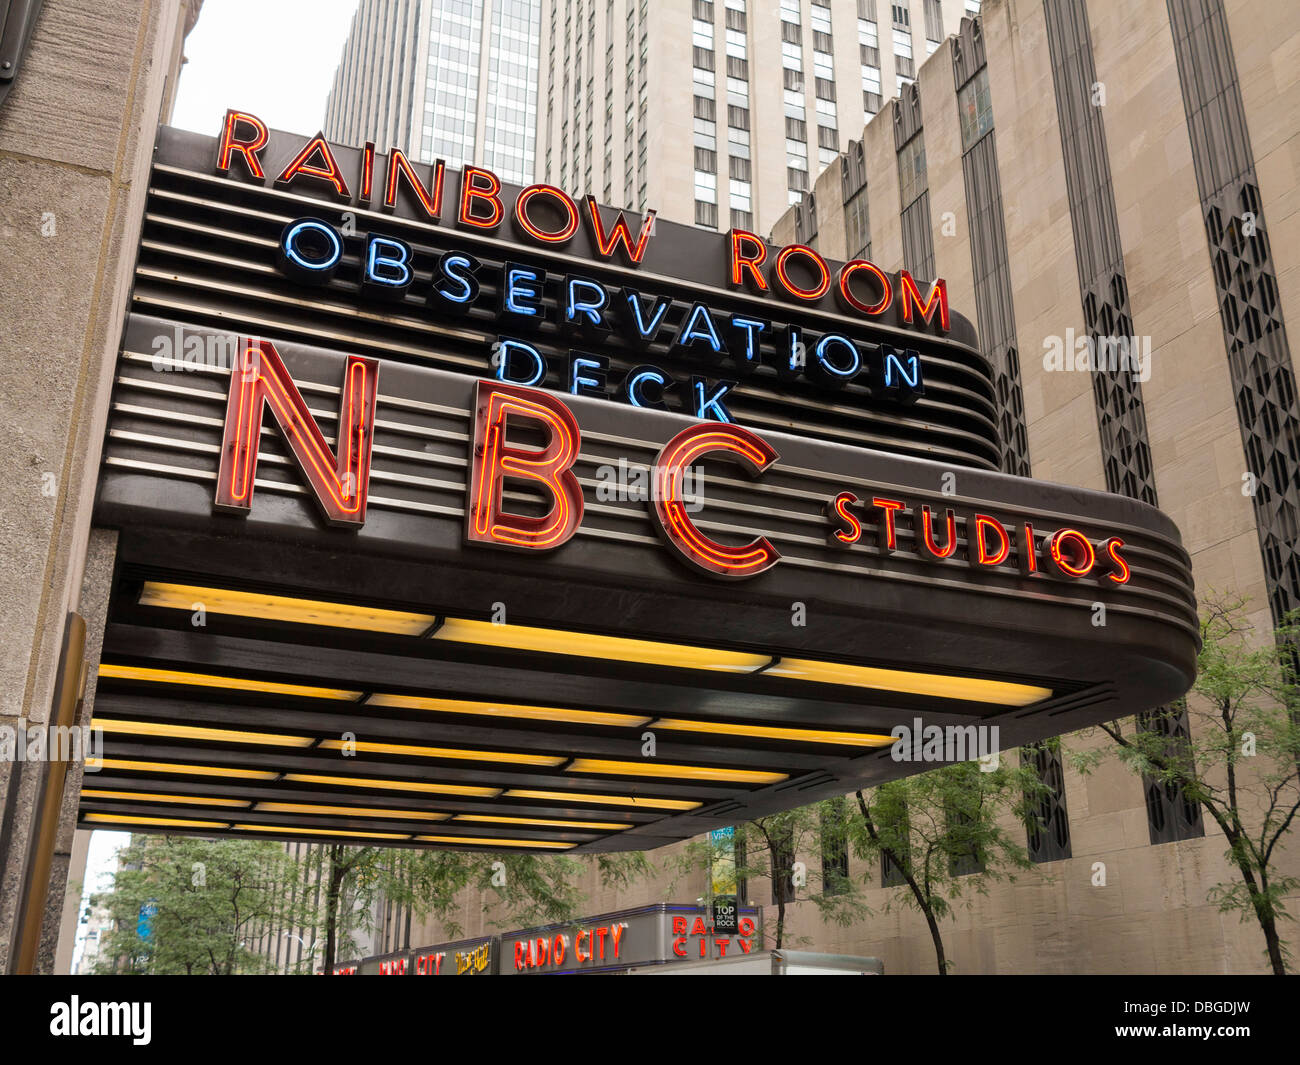 NBC Studios at the Rockerfeller Centre, NYC - Stock Image